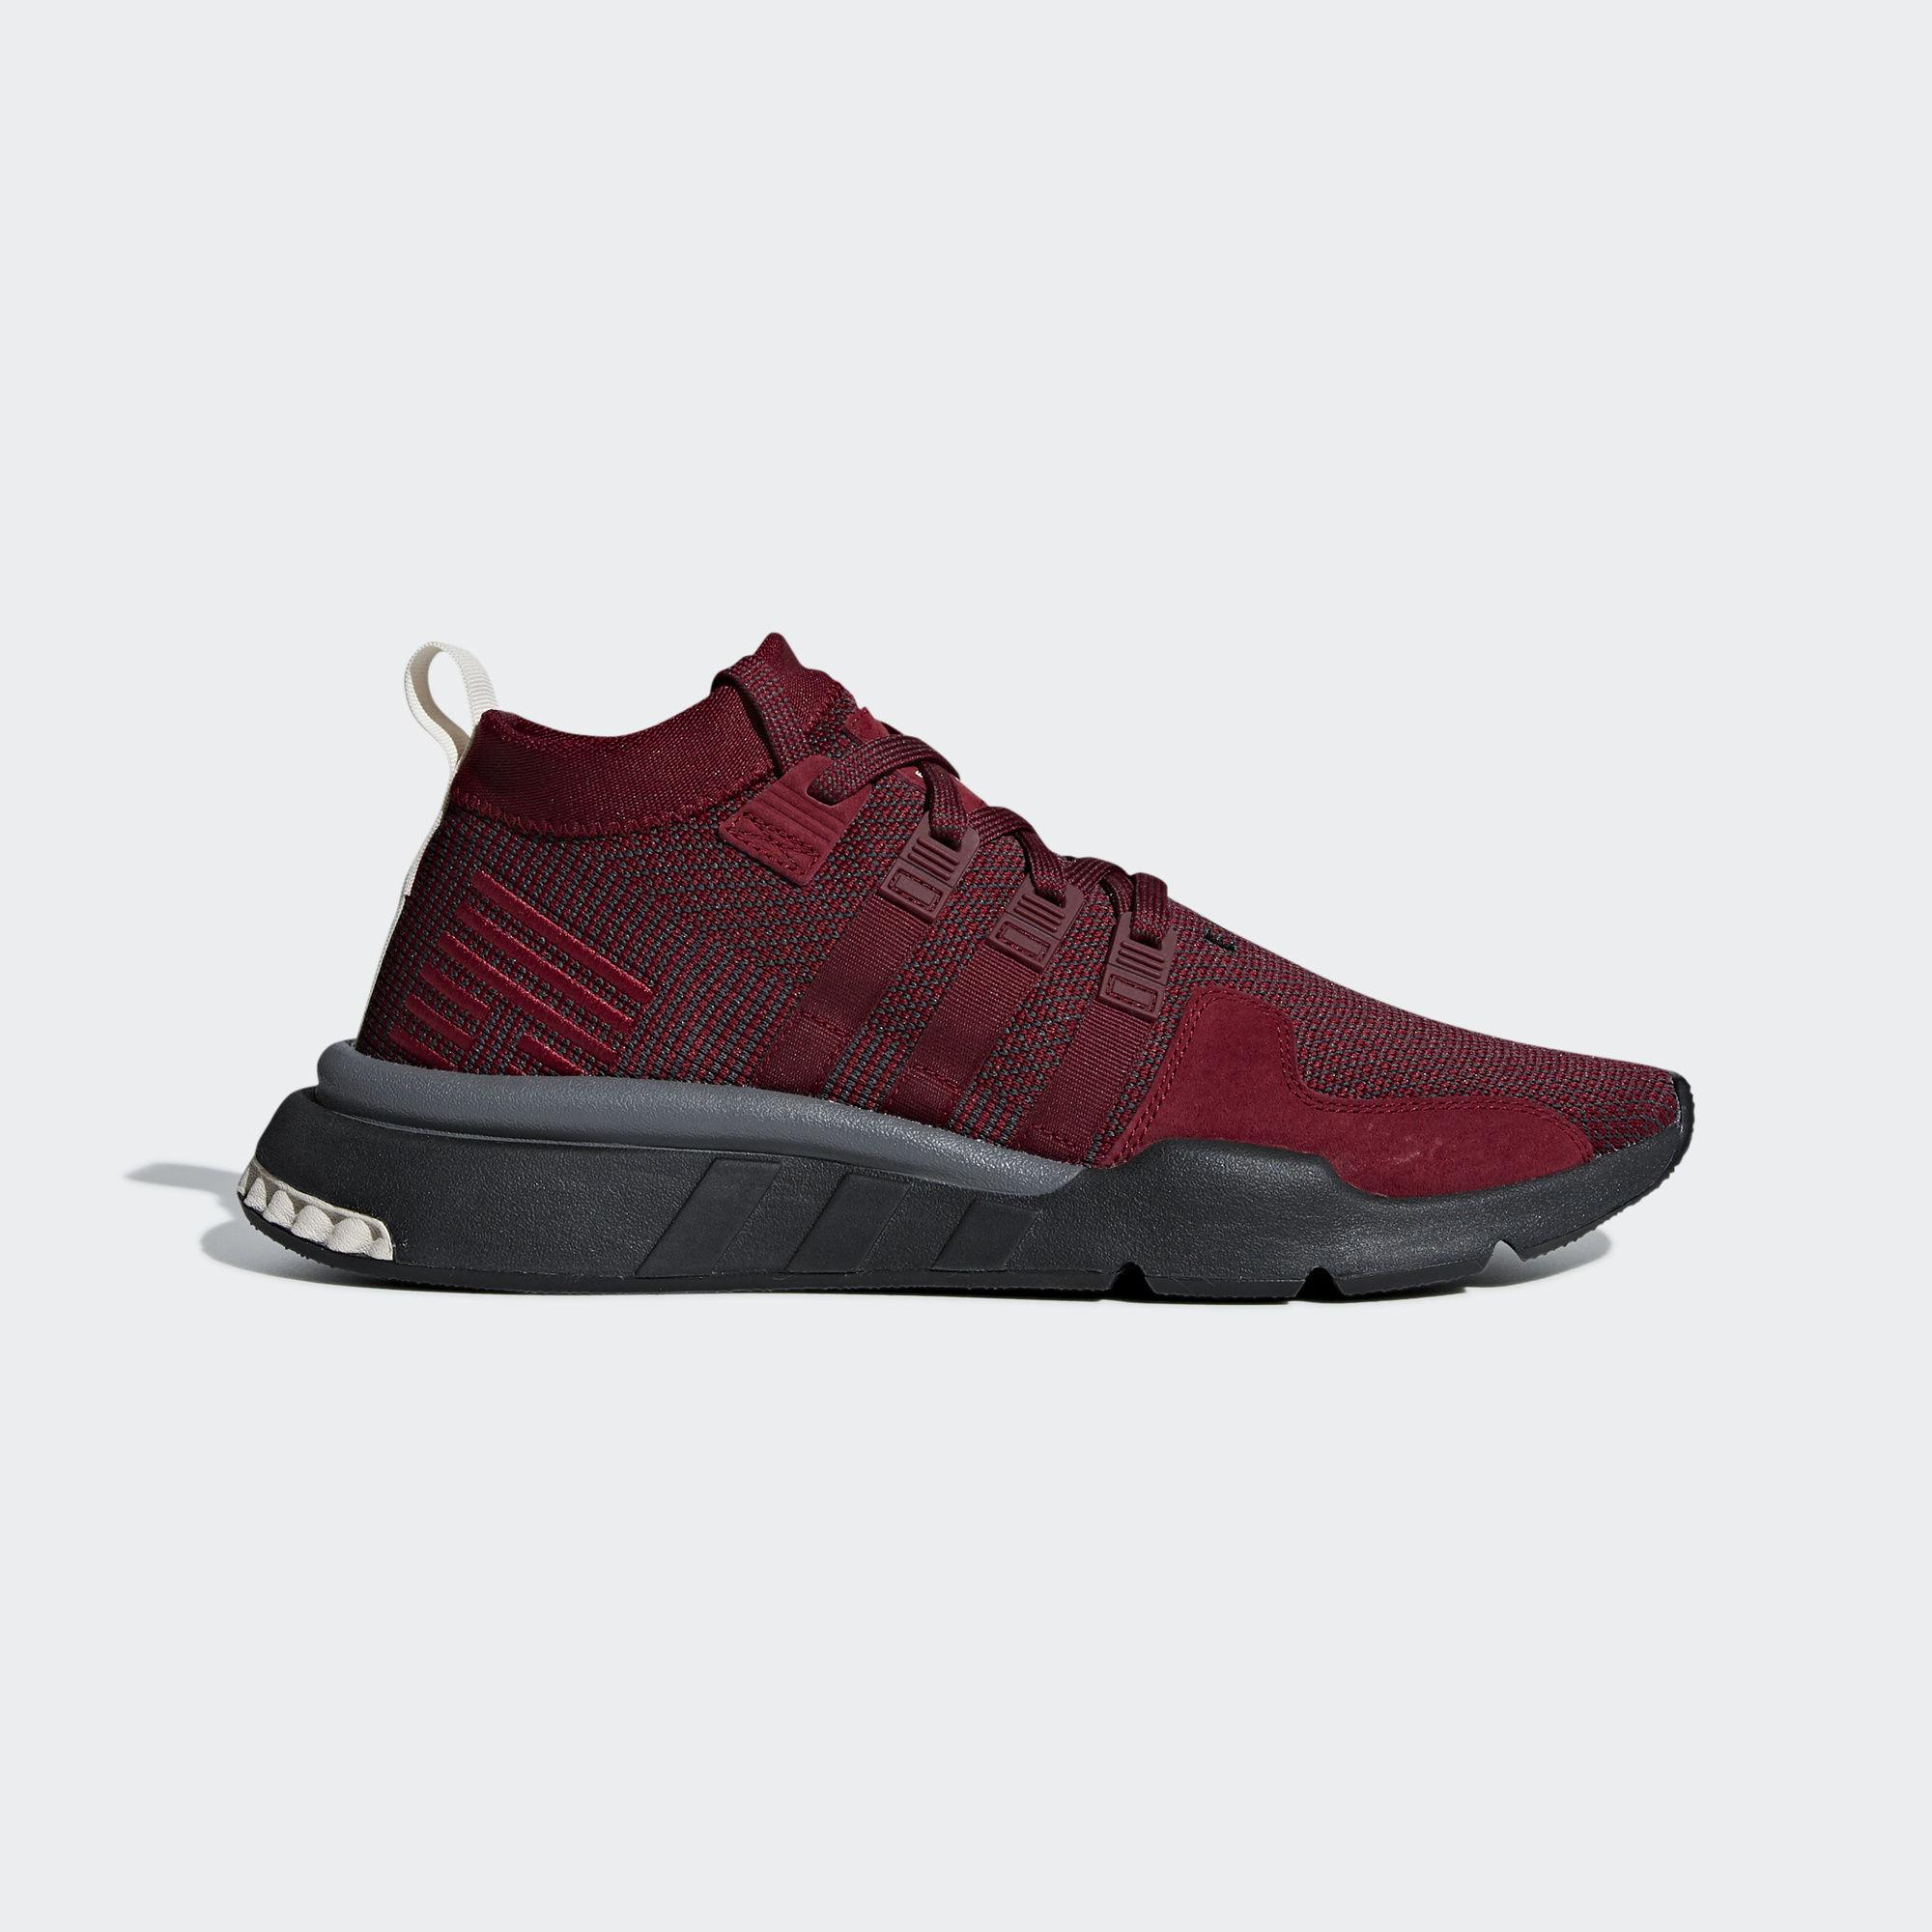 4eff6e4d0550 adidas Eqt Support Mid Adv Shoes in Red - Lyst